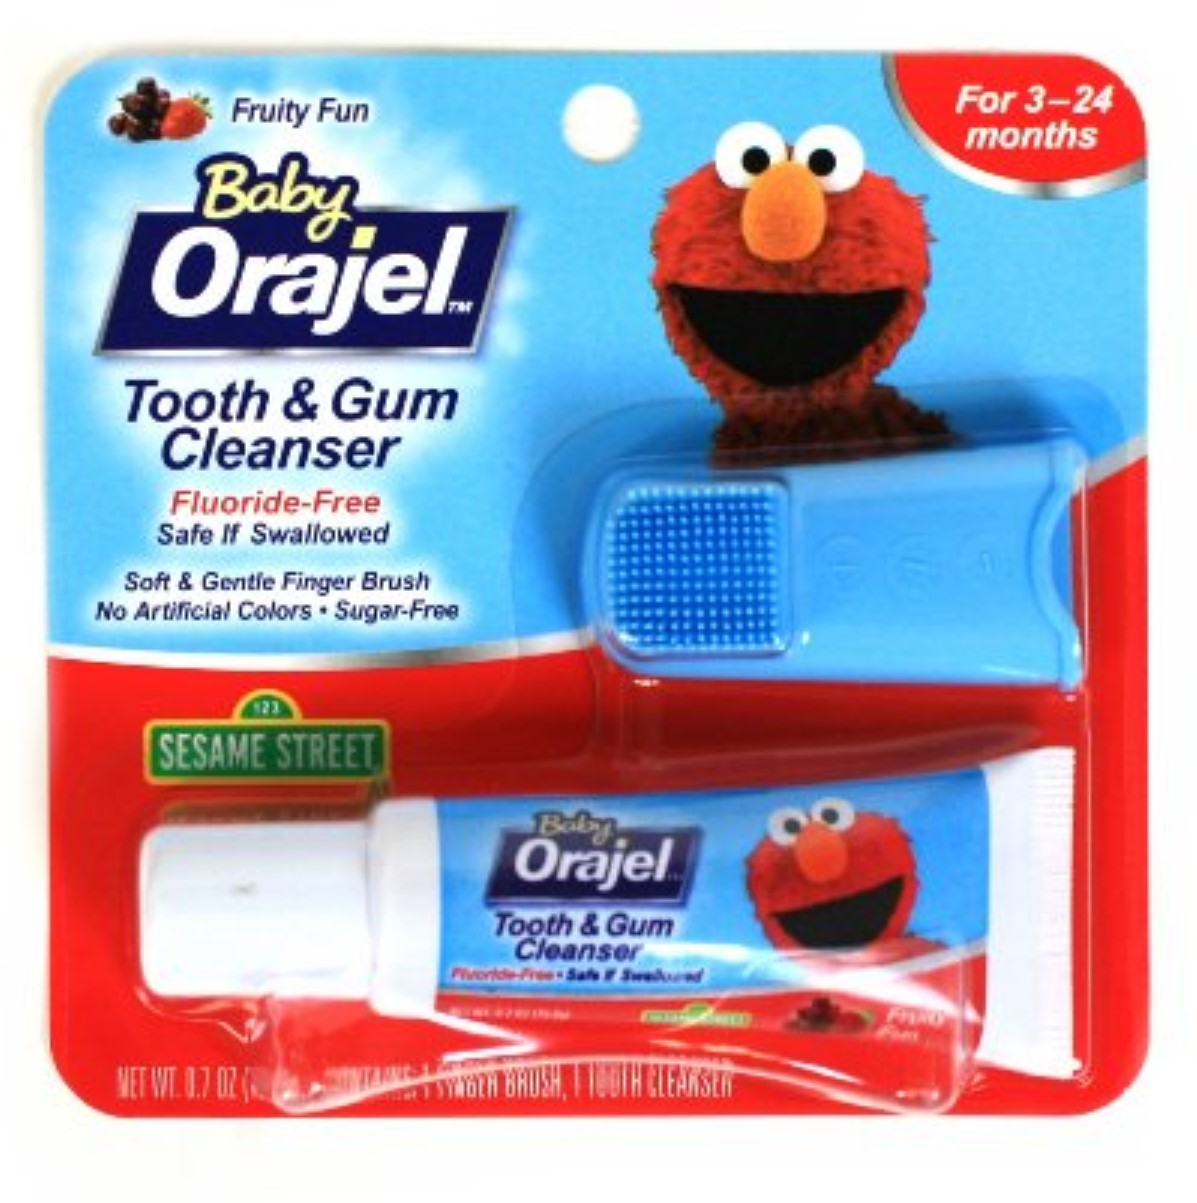 Baby Orajel Tooth & Gum Cleanser Mixed Fruit 0.70 oz (Pack of 3)